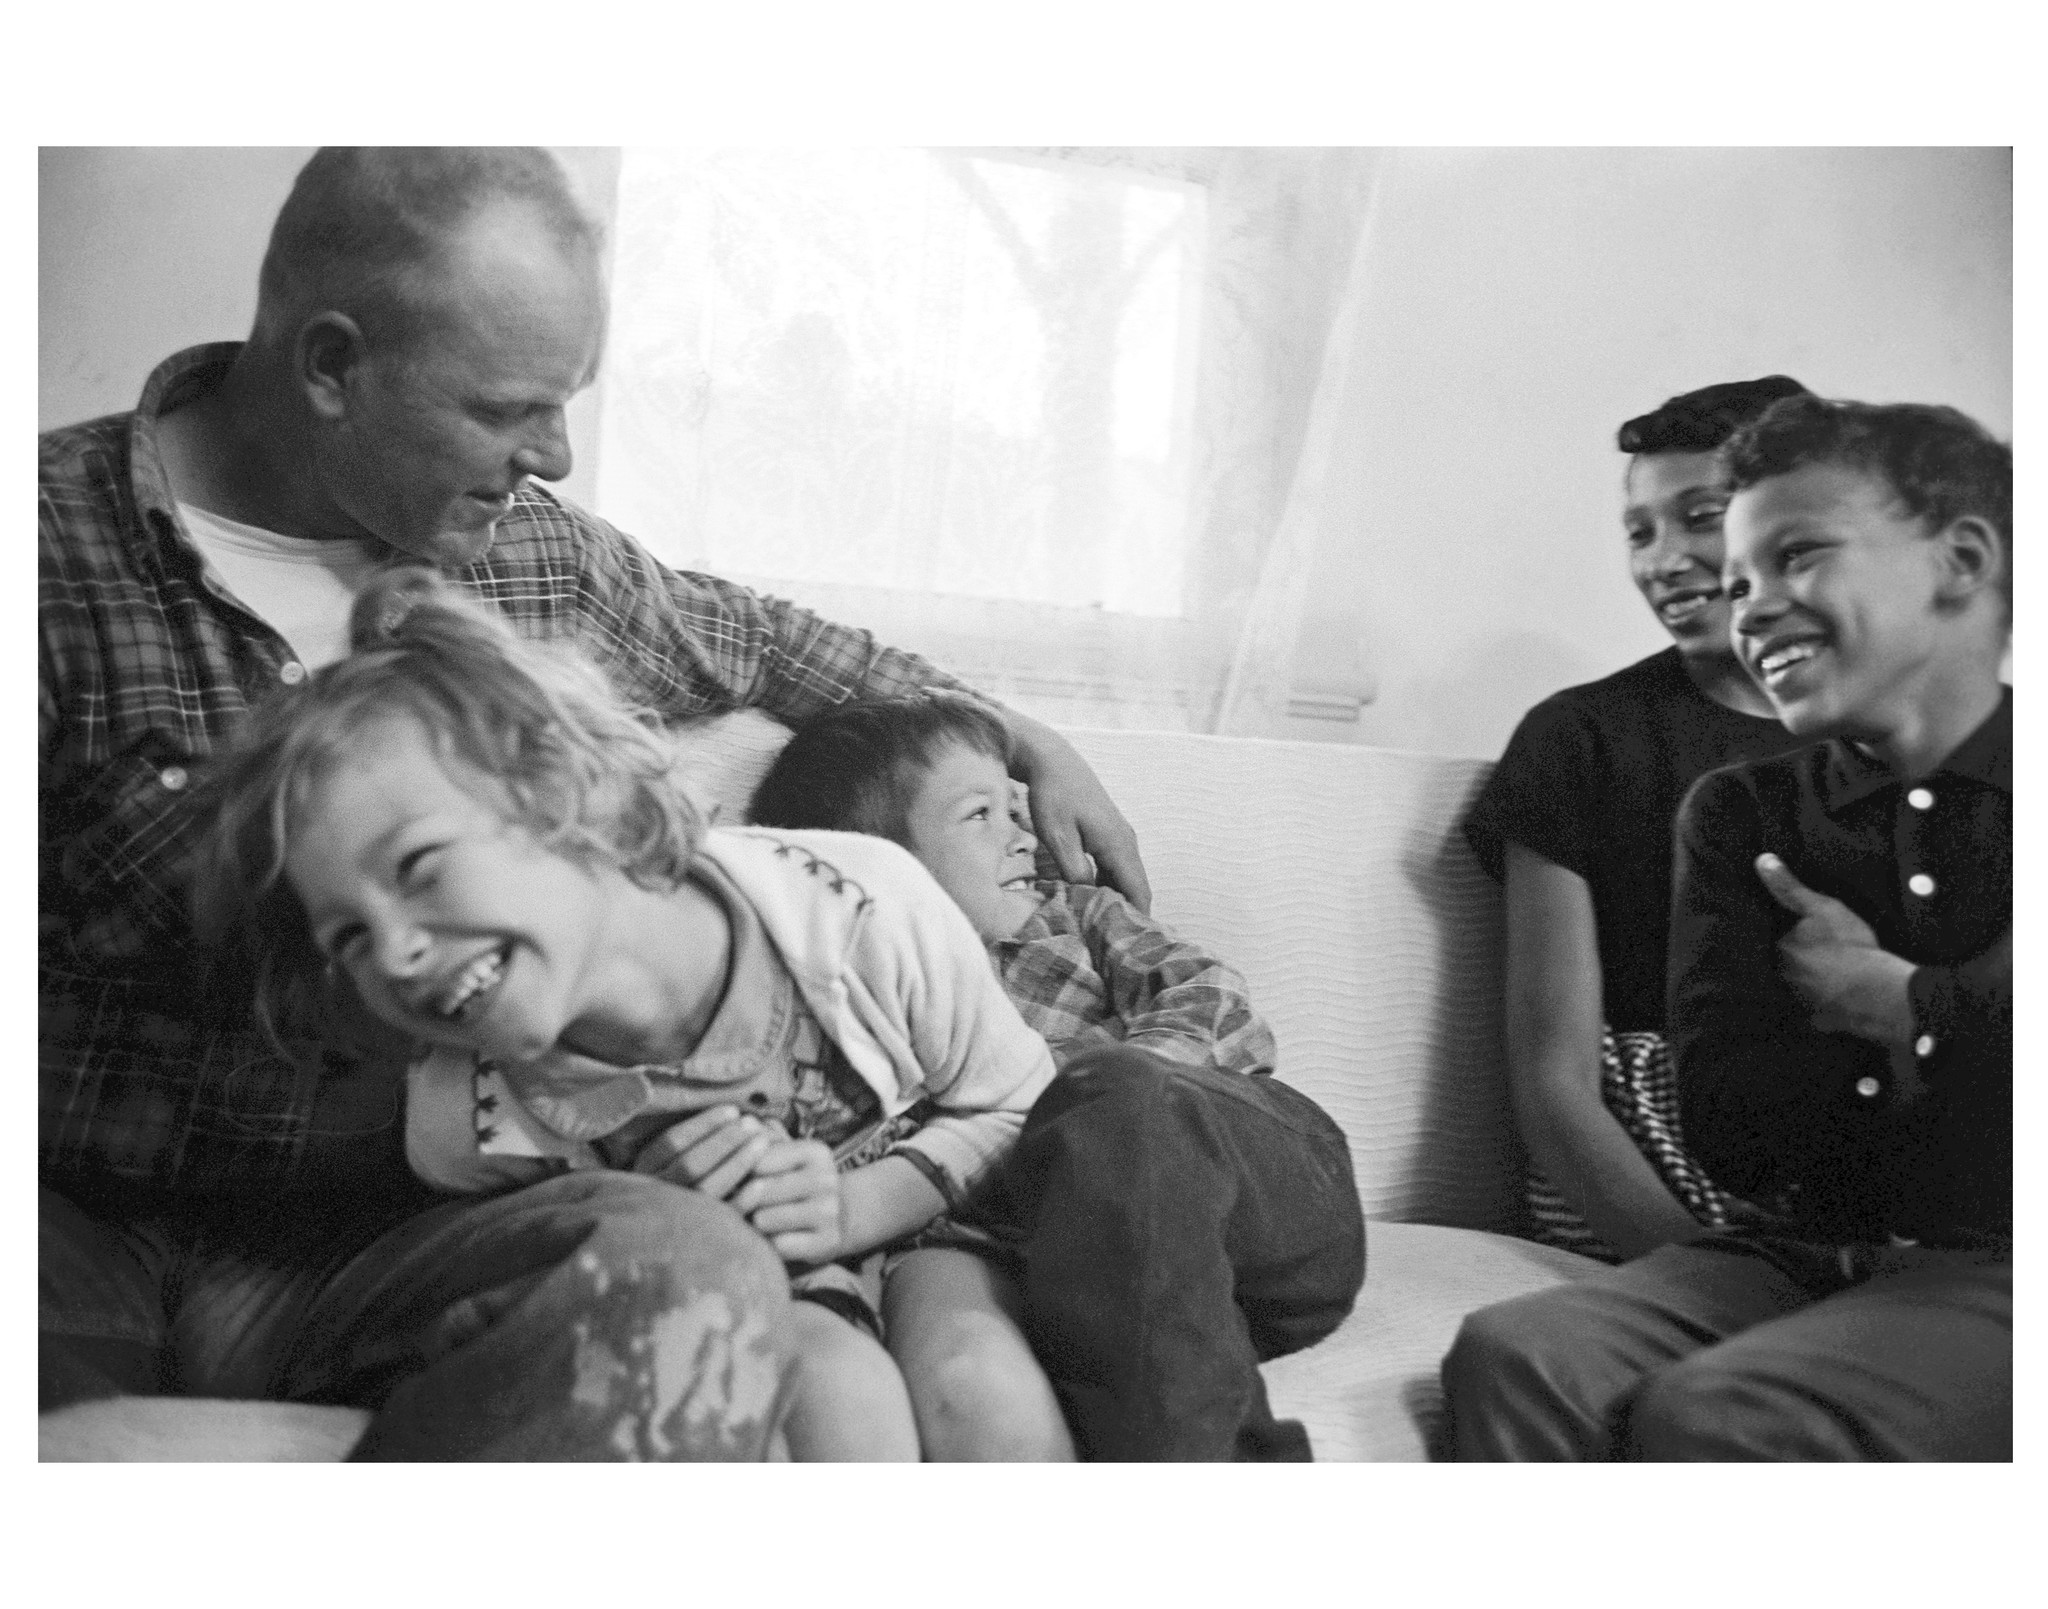 The Lovings with their children at home in King and Queen County, Virginia, in 1965.